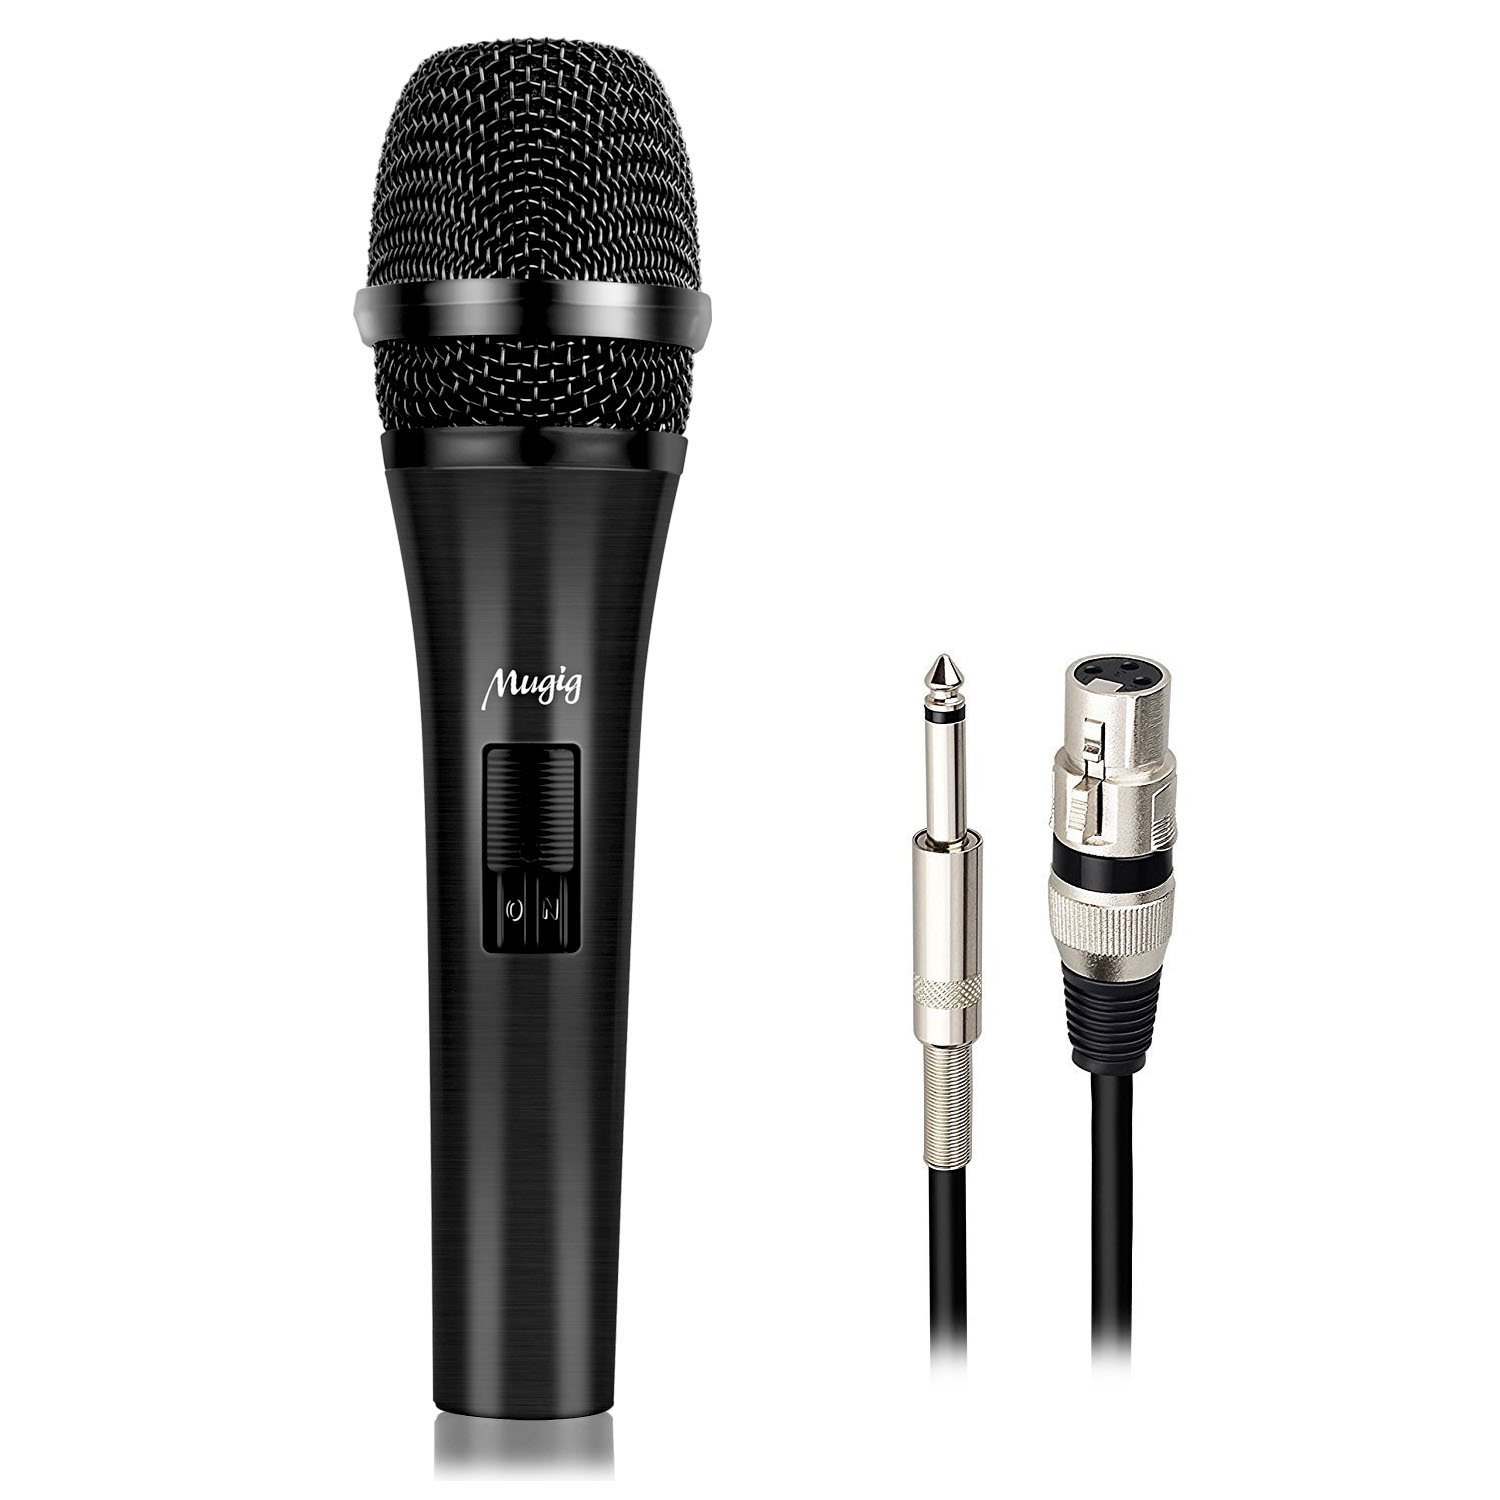 Mugig Dynamic Microphone Uni-directional Cardioid Vocal M-2 Handheld Microphone with Cable MCM1